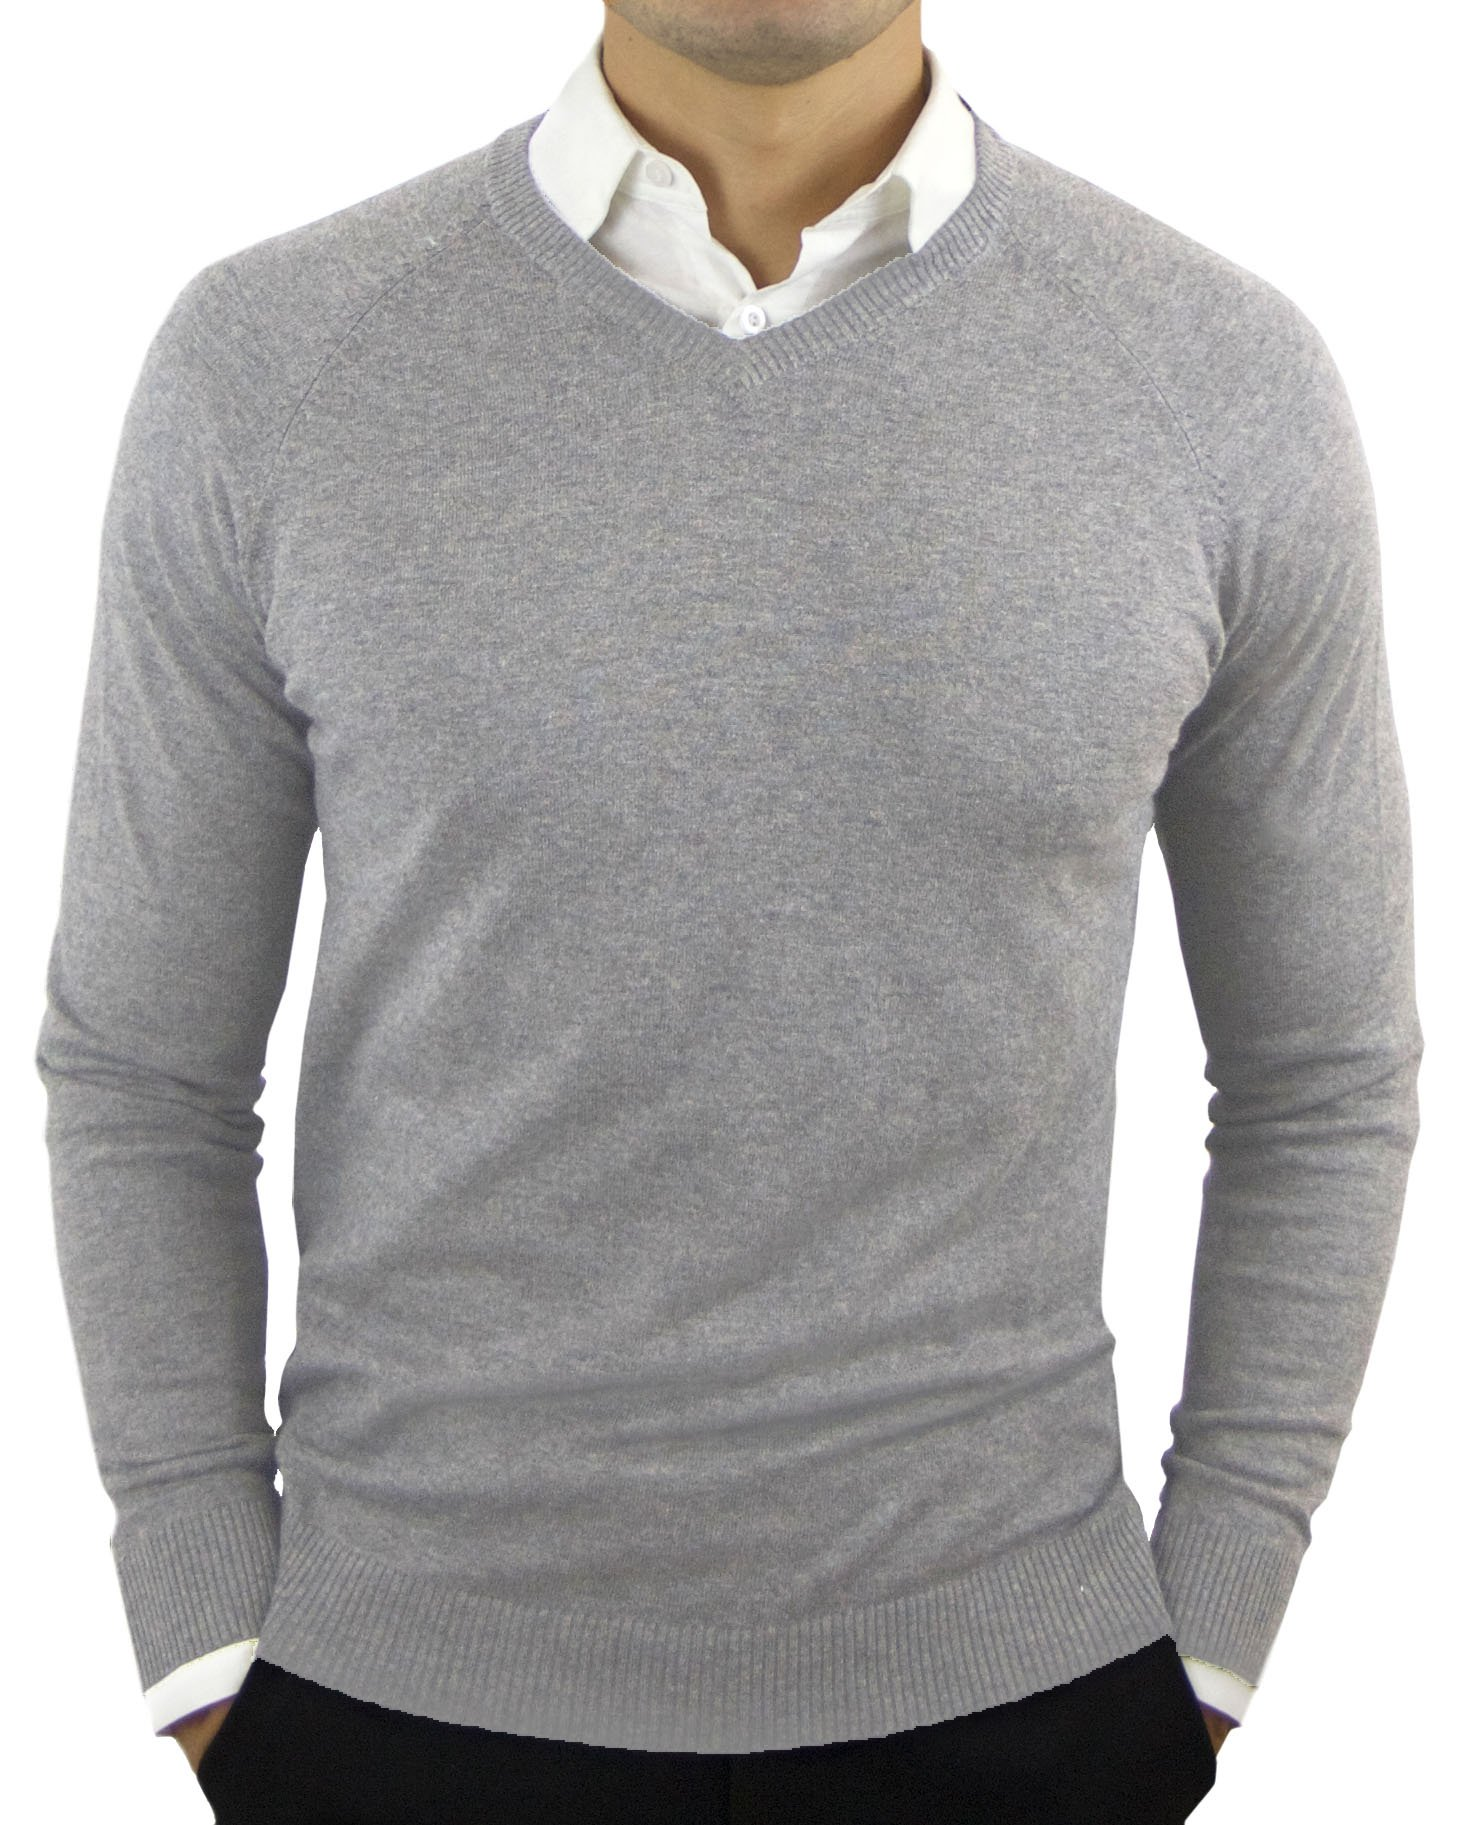 CC Perfect Slim Fit V Neck Sweaters for Men | Lightweight Breathable Mens Sweater | Soft Fitted V-Neck Pullover for Men, Medium, Heather Grey2